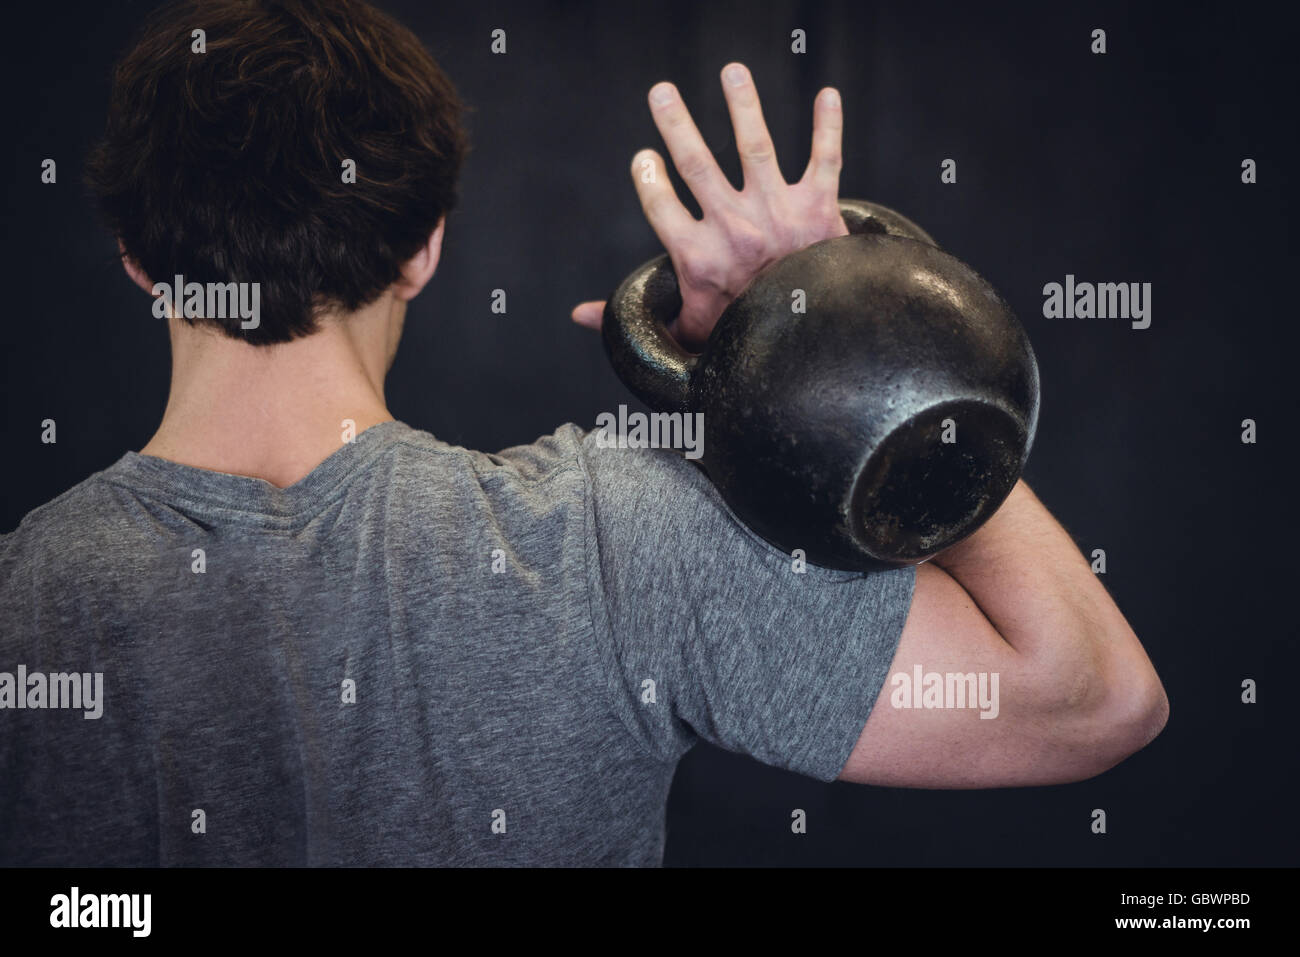 Man working out in gym with kettlebell. - Stock Image